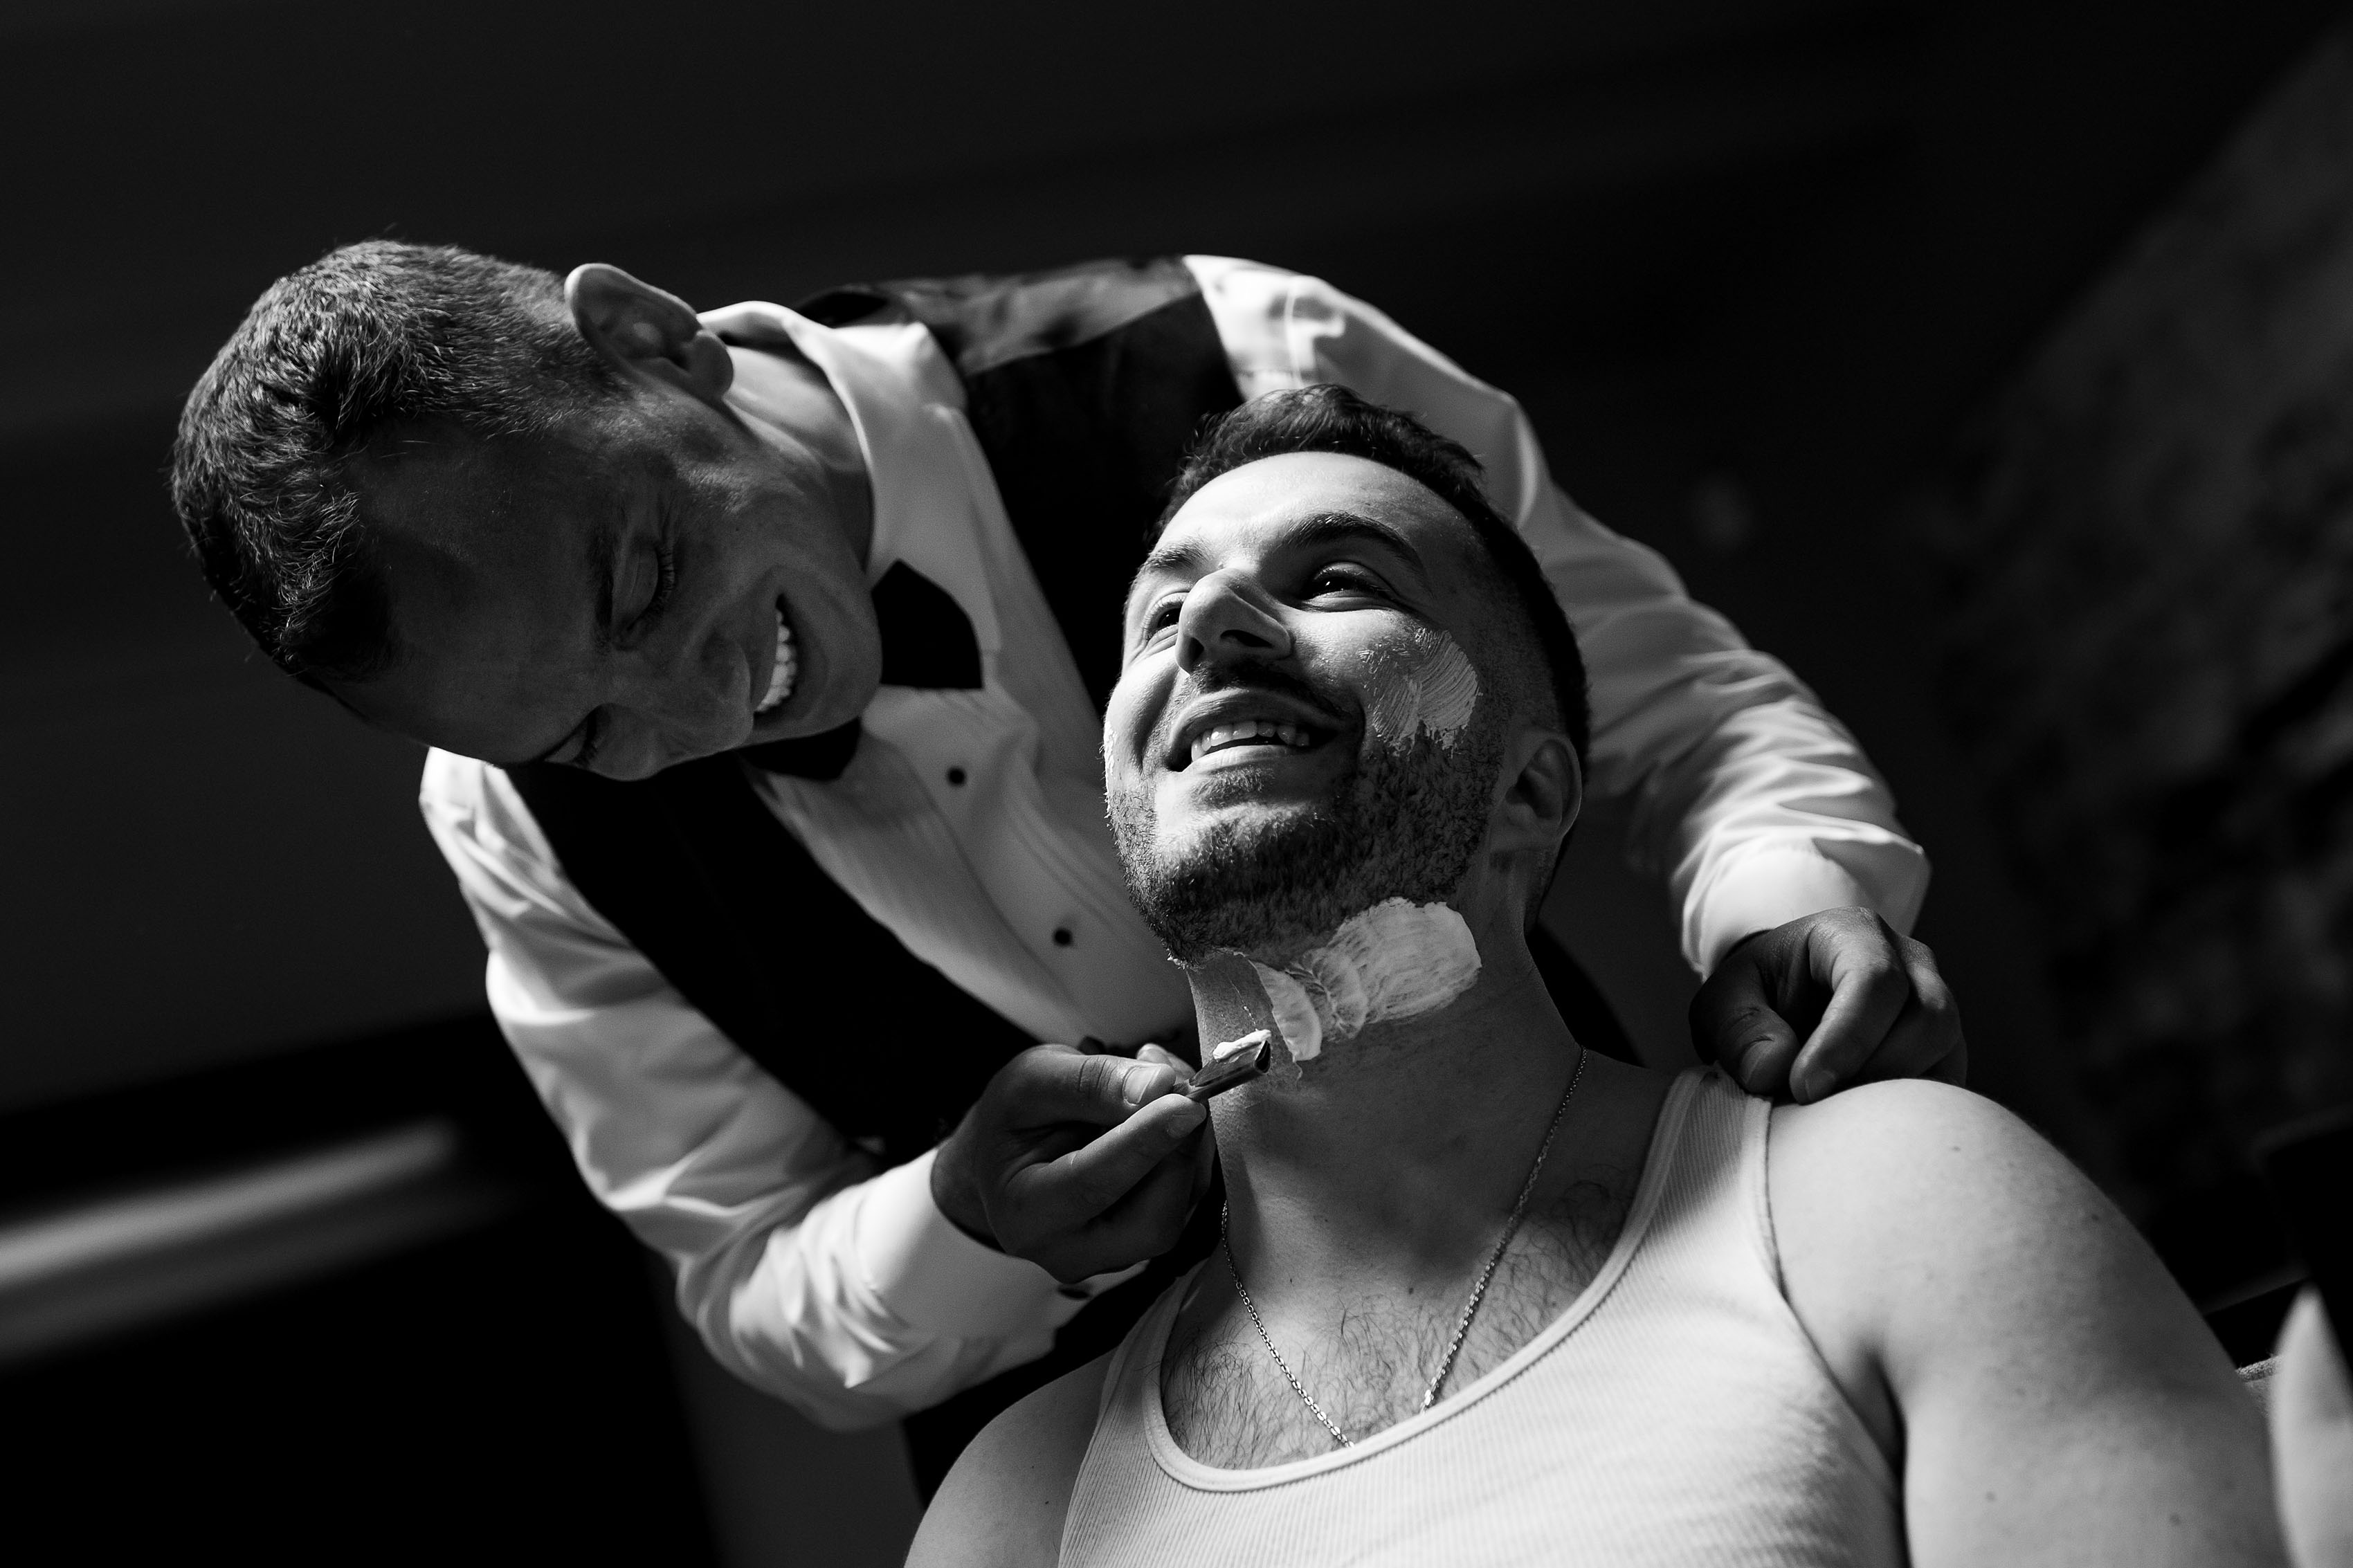 The groom is shaved by the best man during a cypriot wedding tradition prior to the Albuquerque wedding